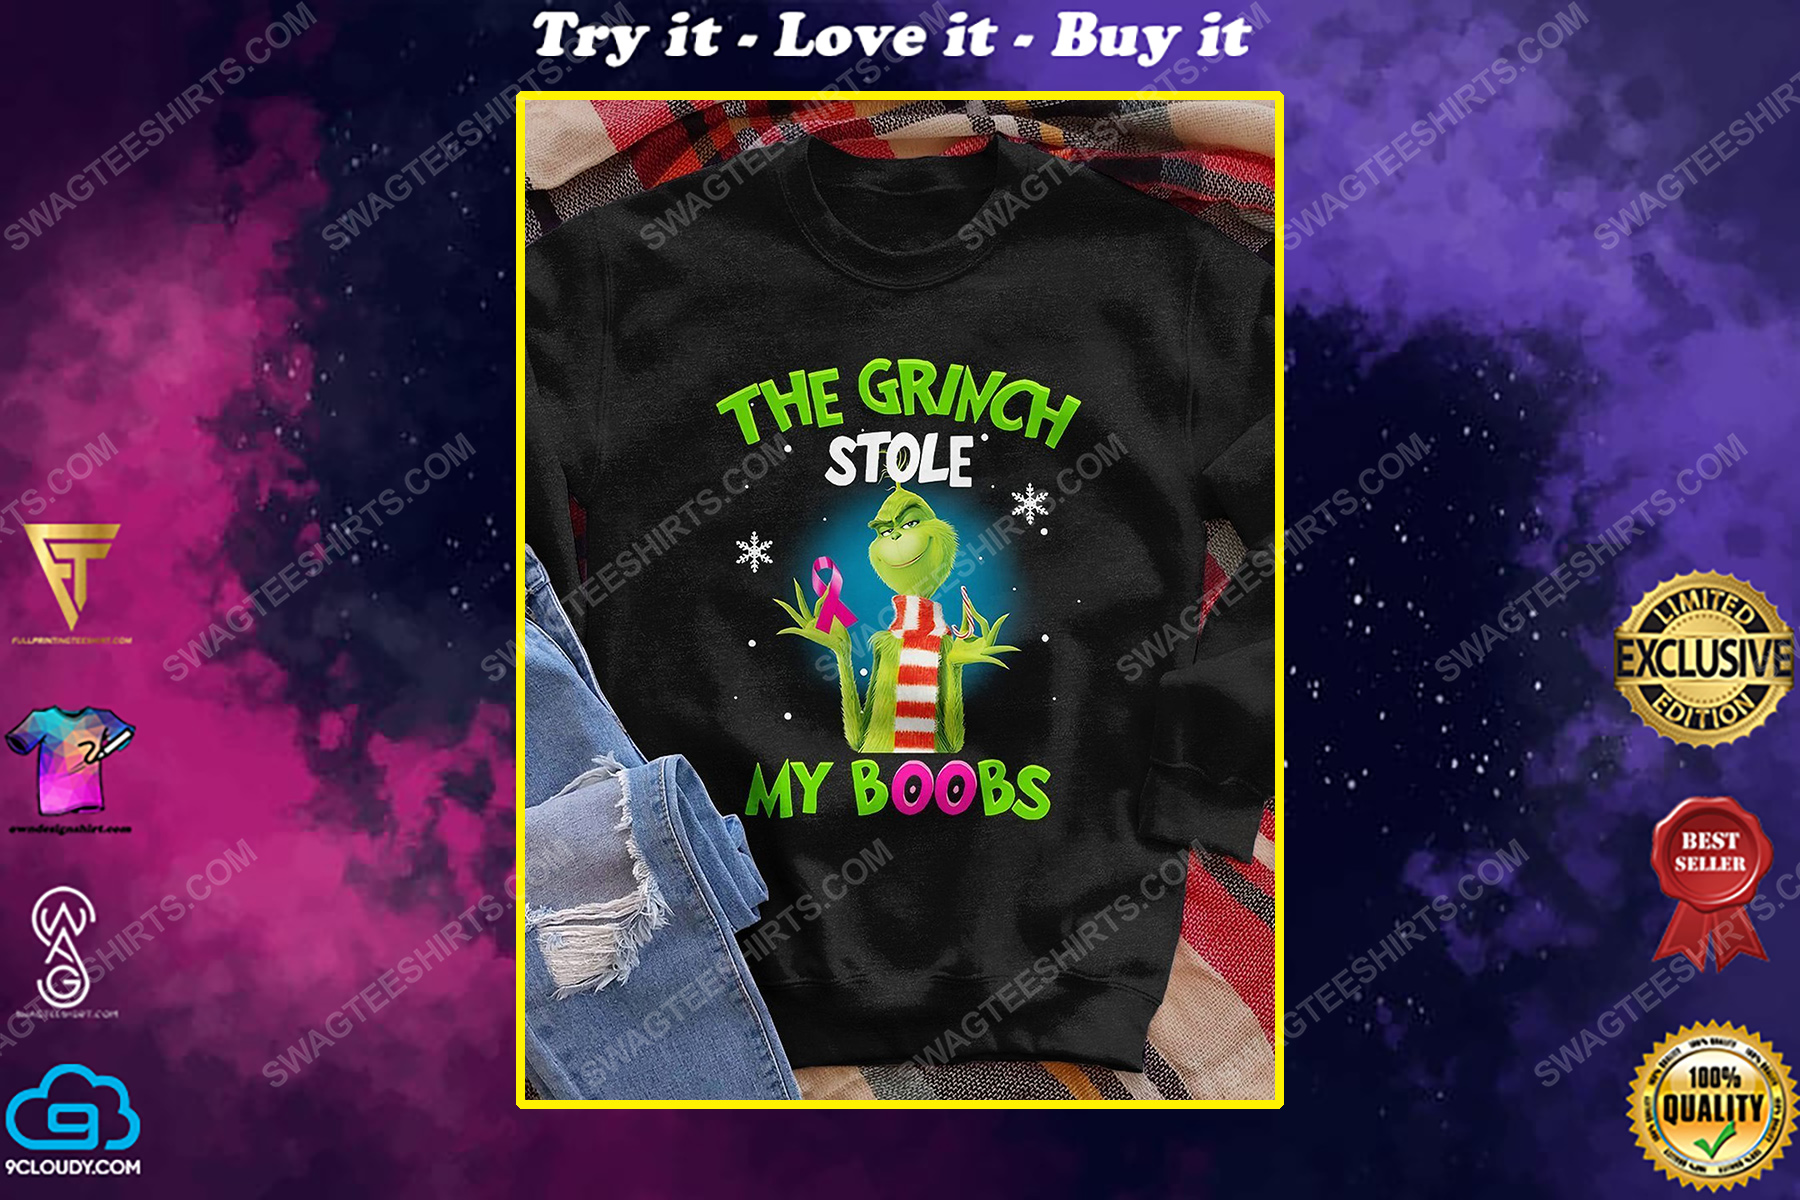 Breast cancer awareness the grinch stole my boobs shirt